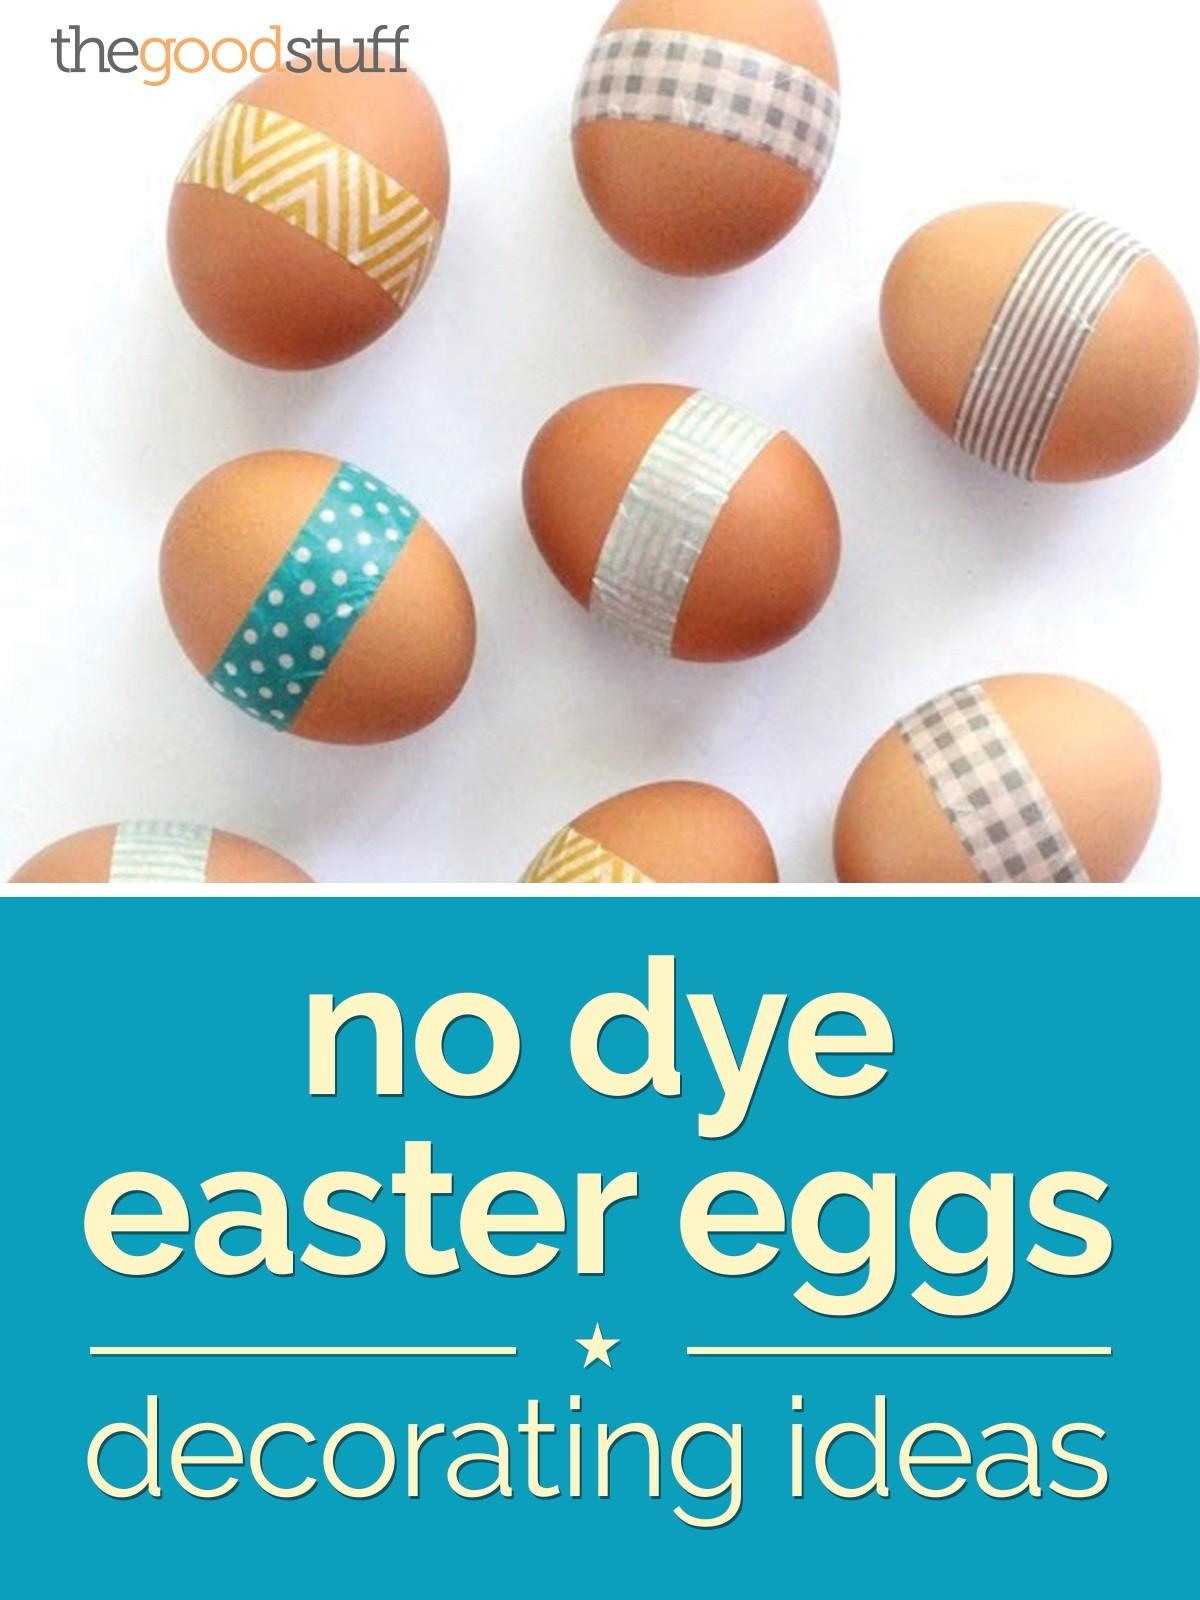 Dye Easter Eggs Decorating Ideas Thegoodstuff